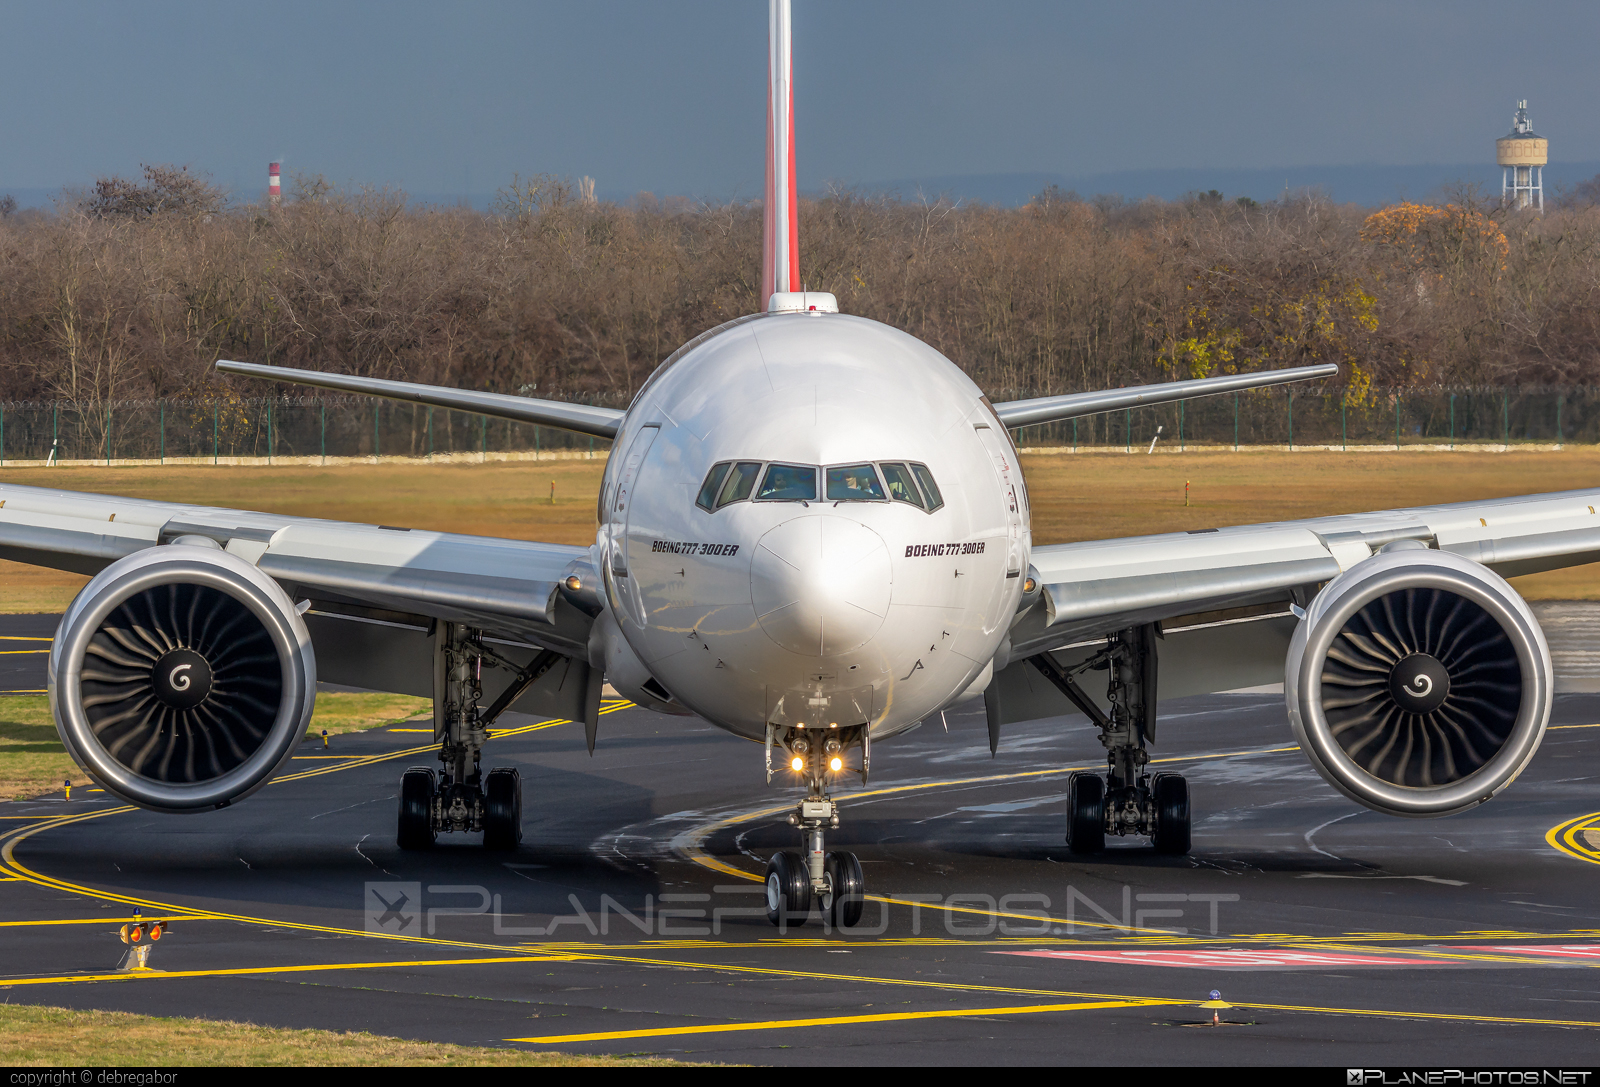 Boeing 777-300ER - A6-EGS operated by Emirates #b777 #b777er #boeing #boeing777 #emirates #tripleseven